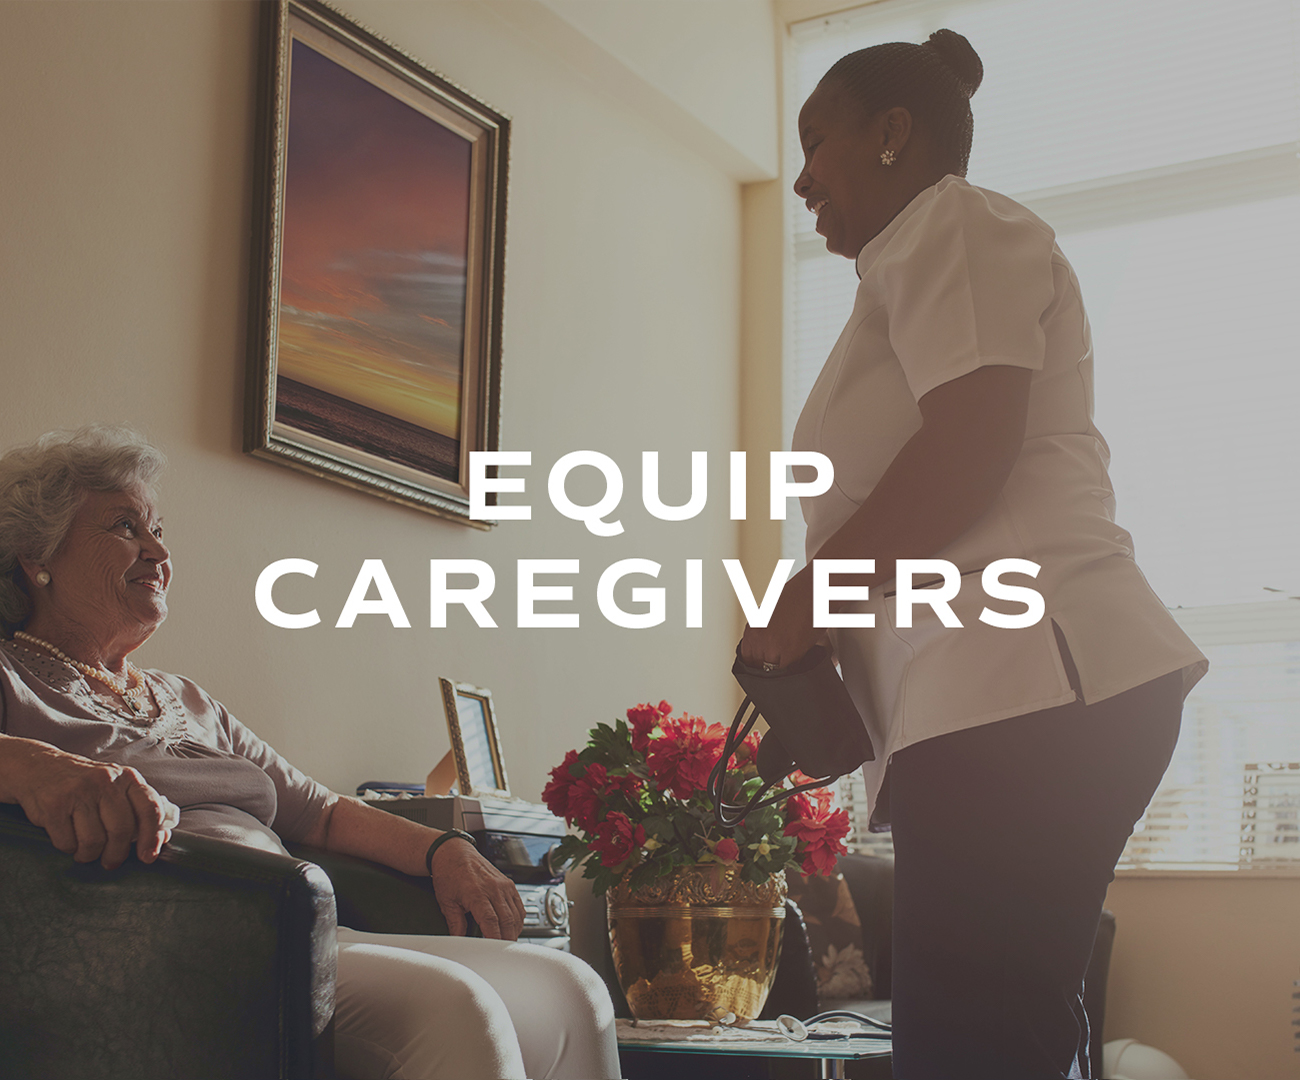 caregiver-resources-residential-assisted-living